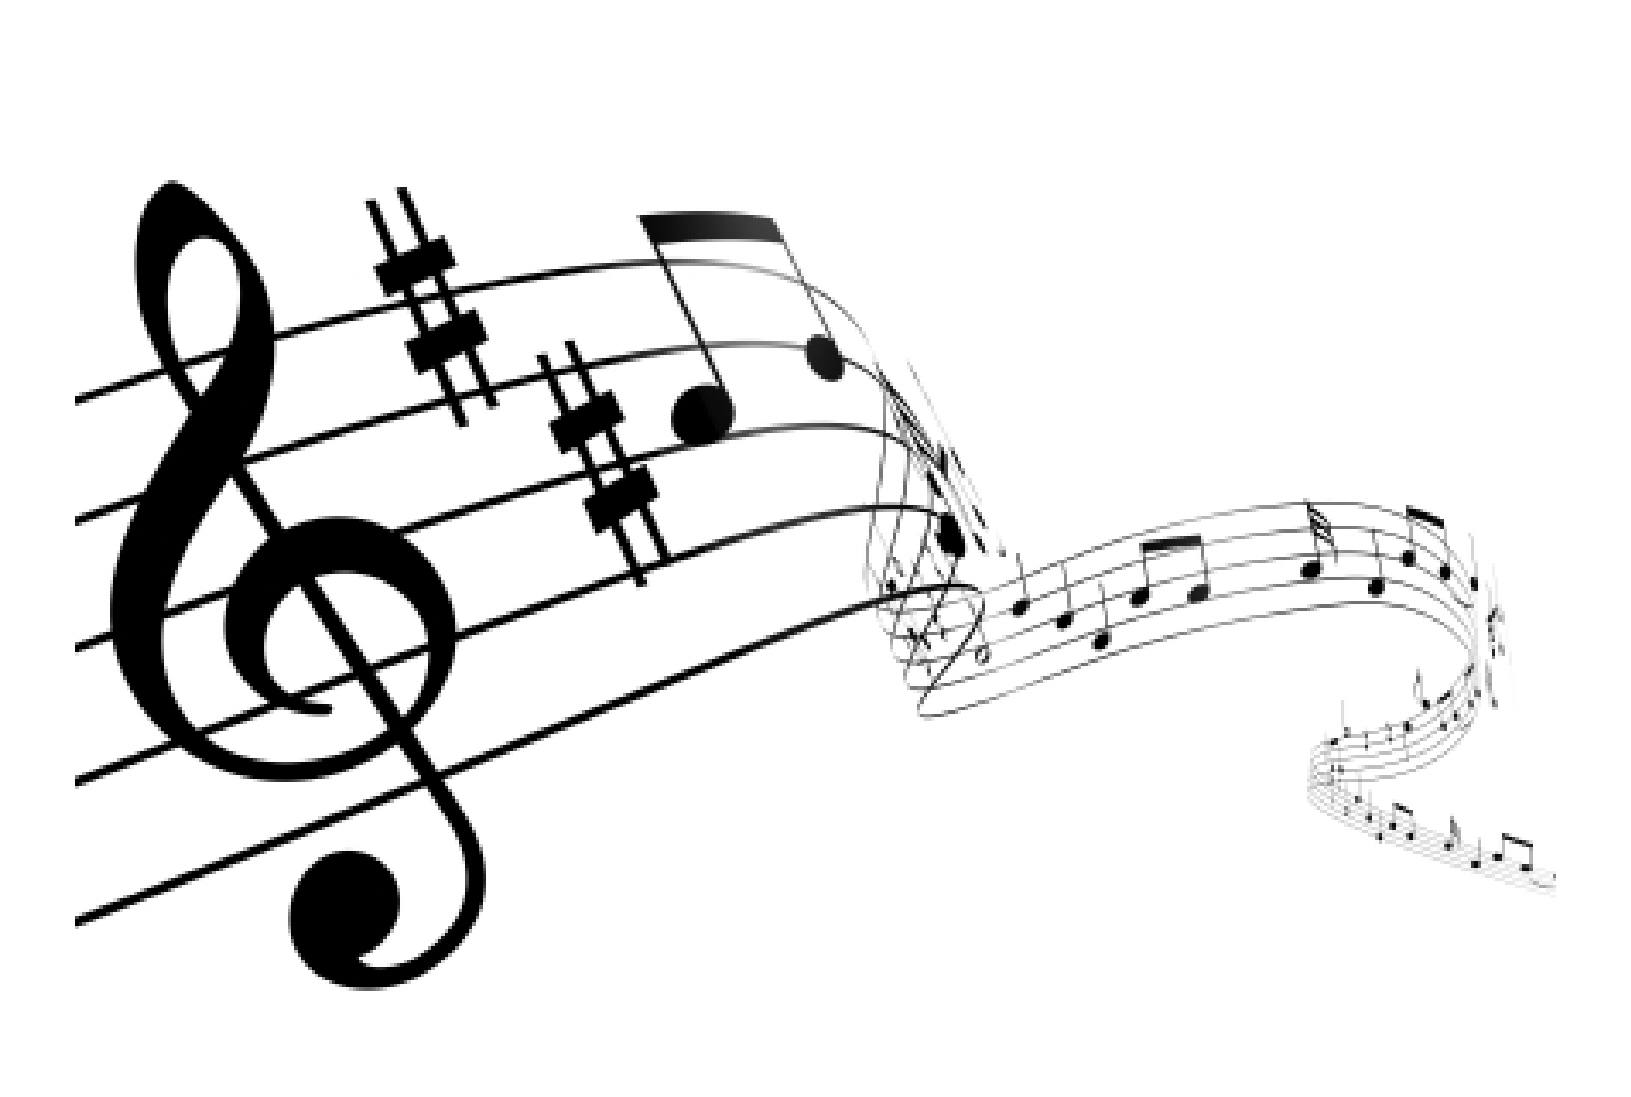 Music Notes Hd Widescreen 10 HD Wallpapers | lzamgs. - Note HD PNG